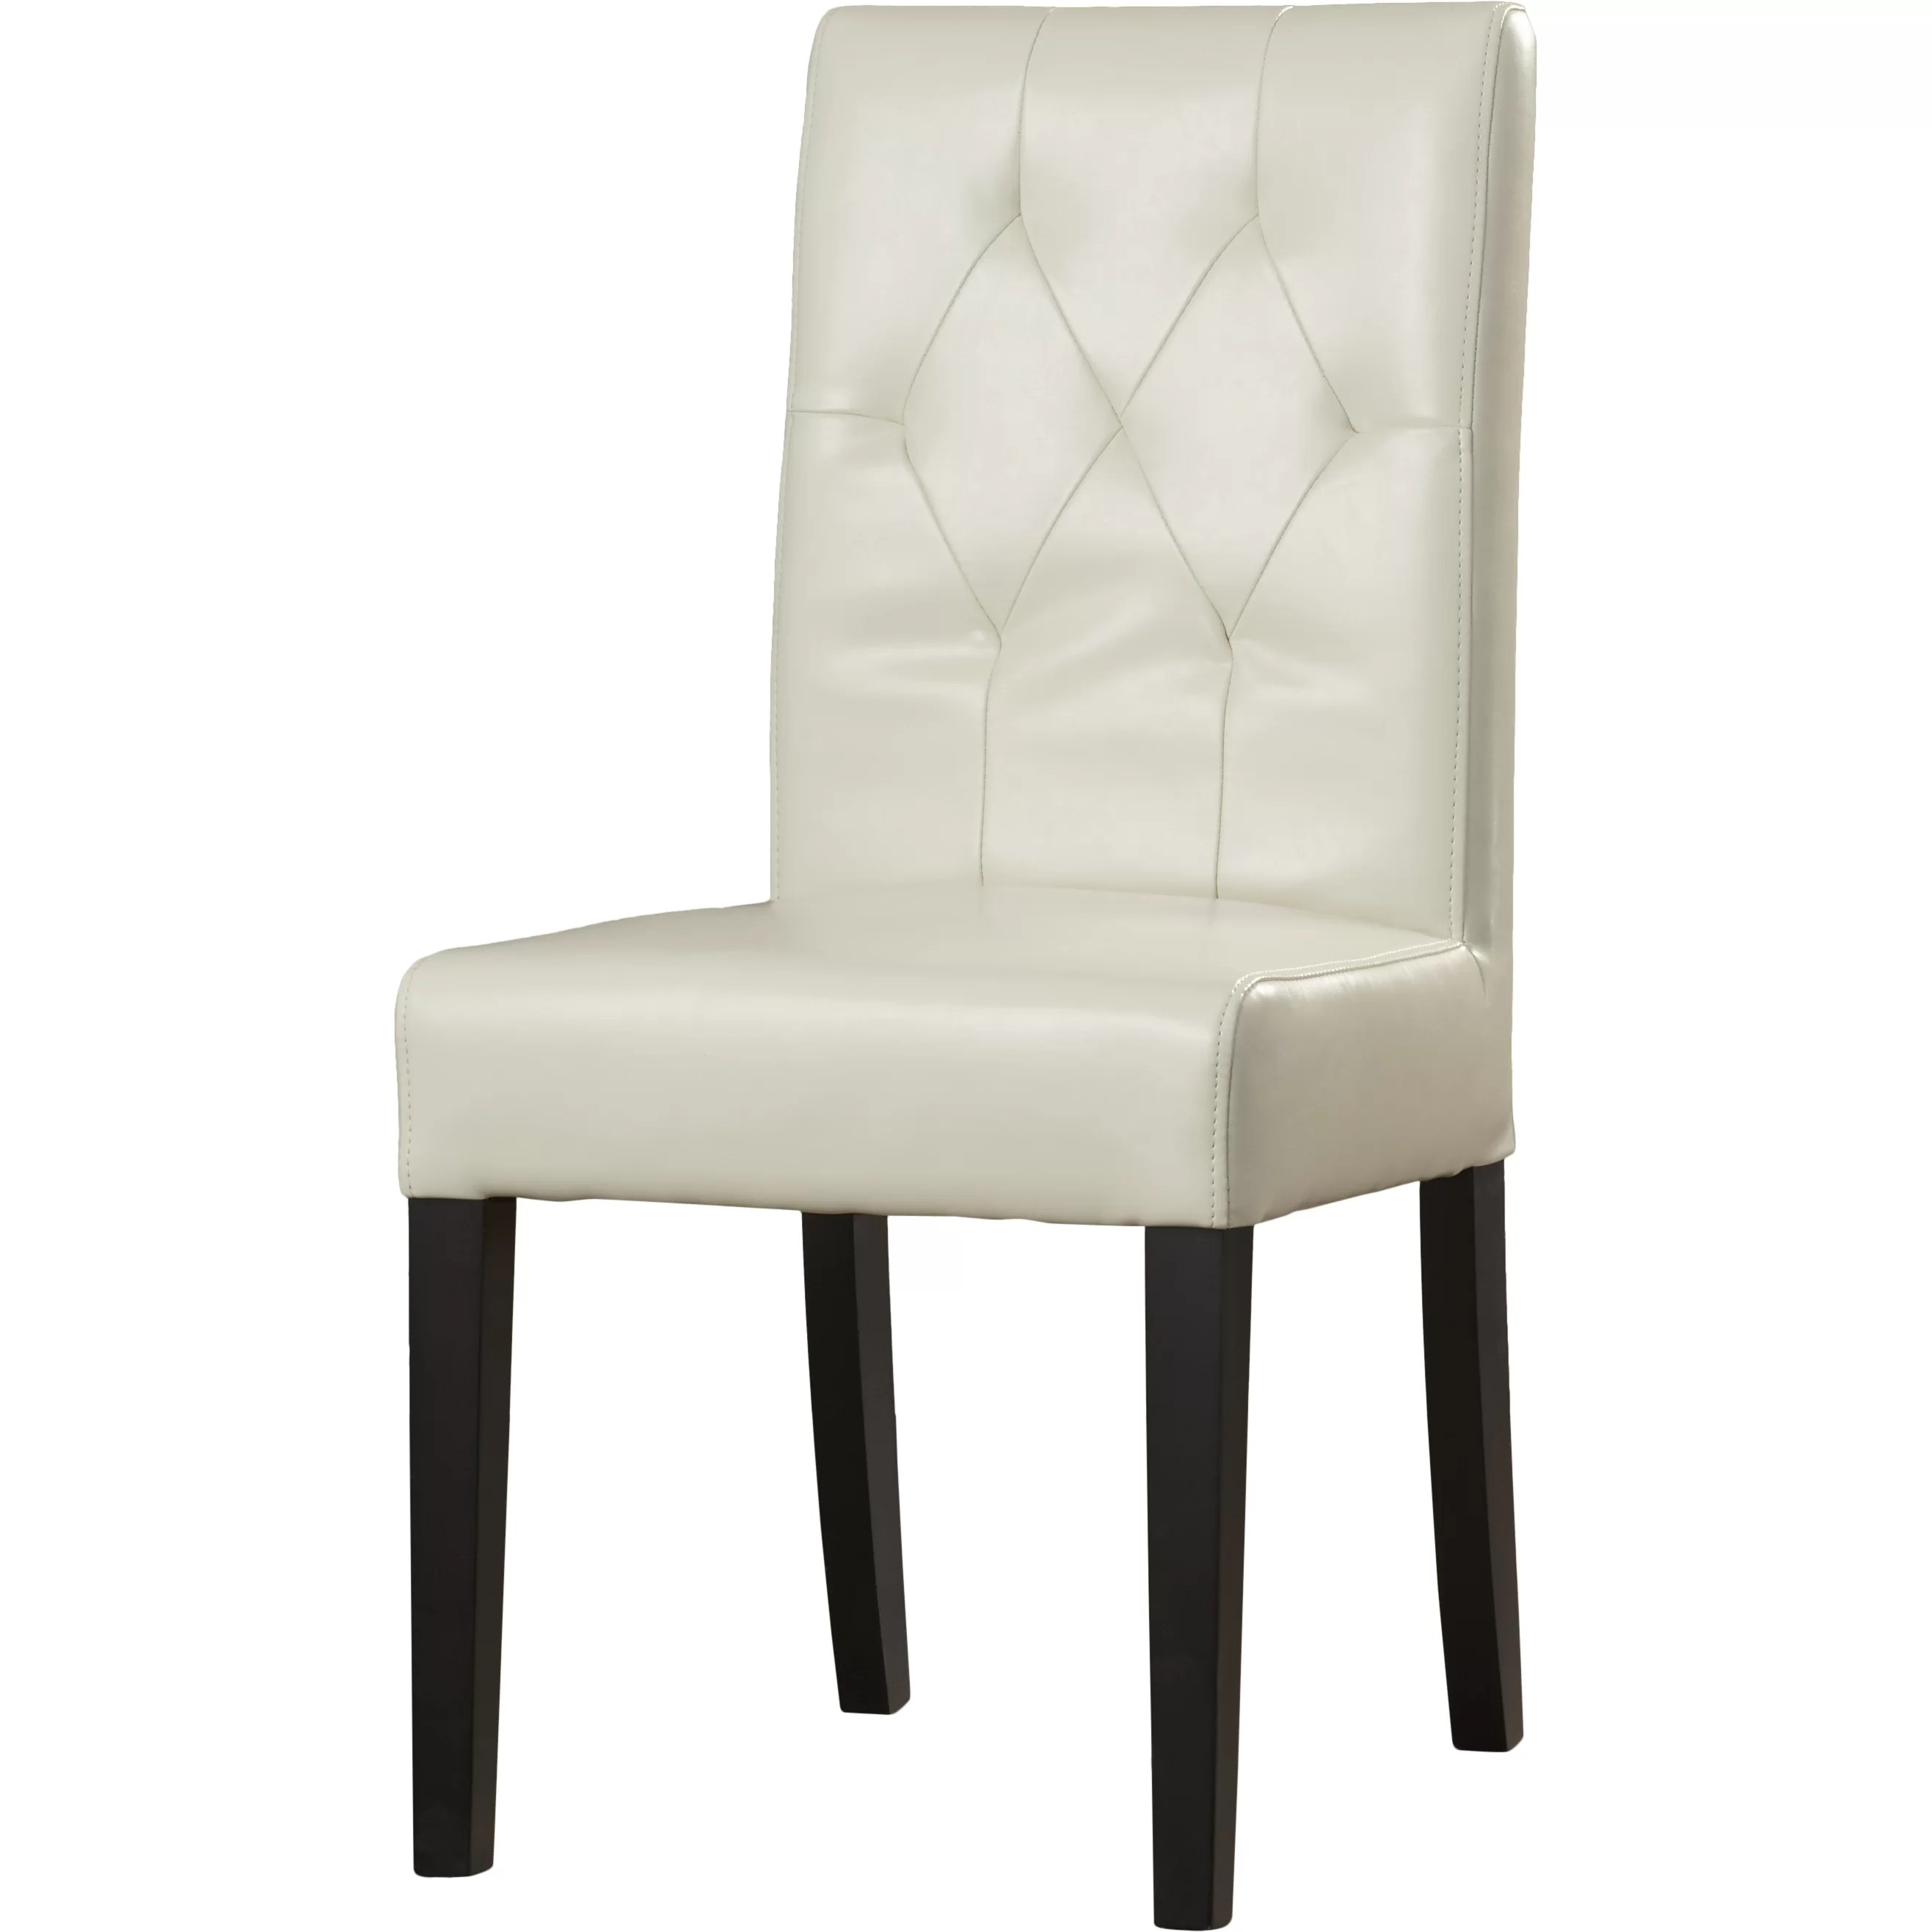 Cherry Chairs Brayden Studio Cherry Bonded Leather Upholstered Dining